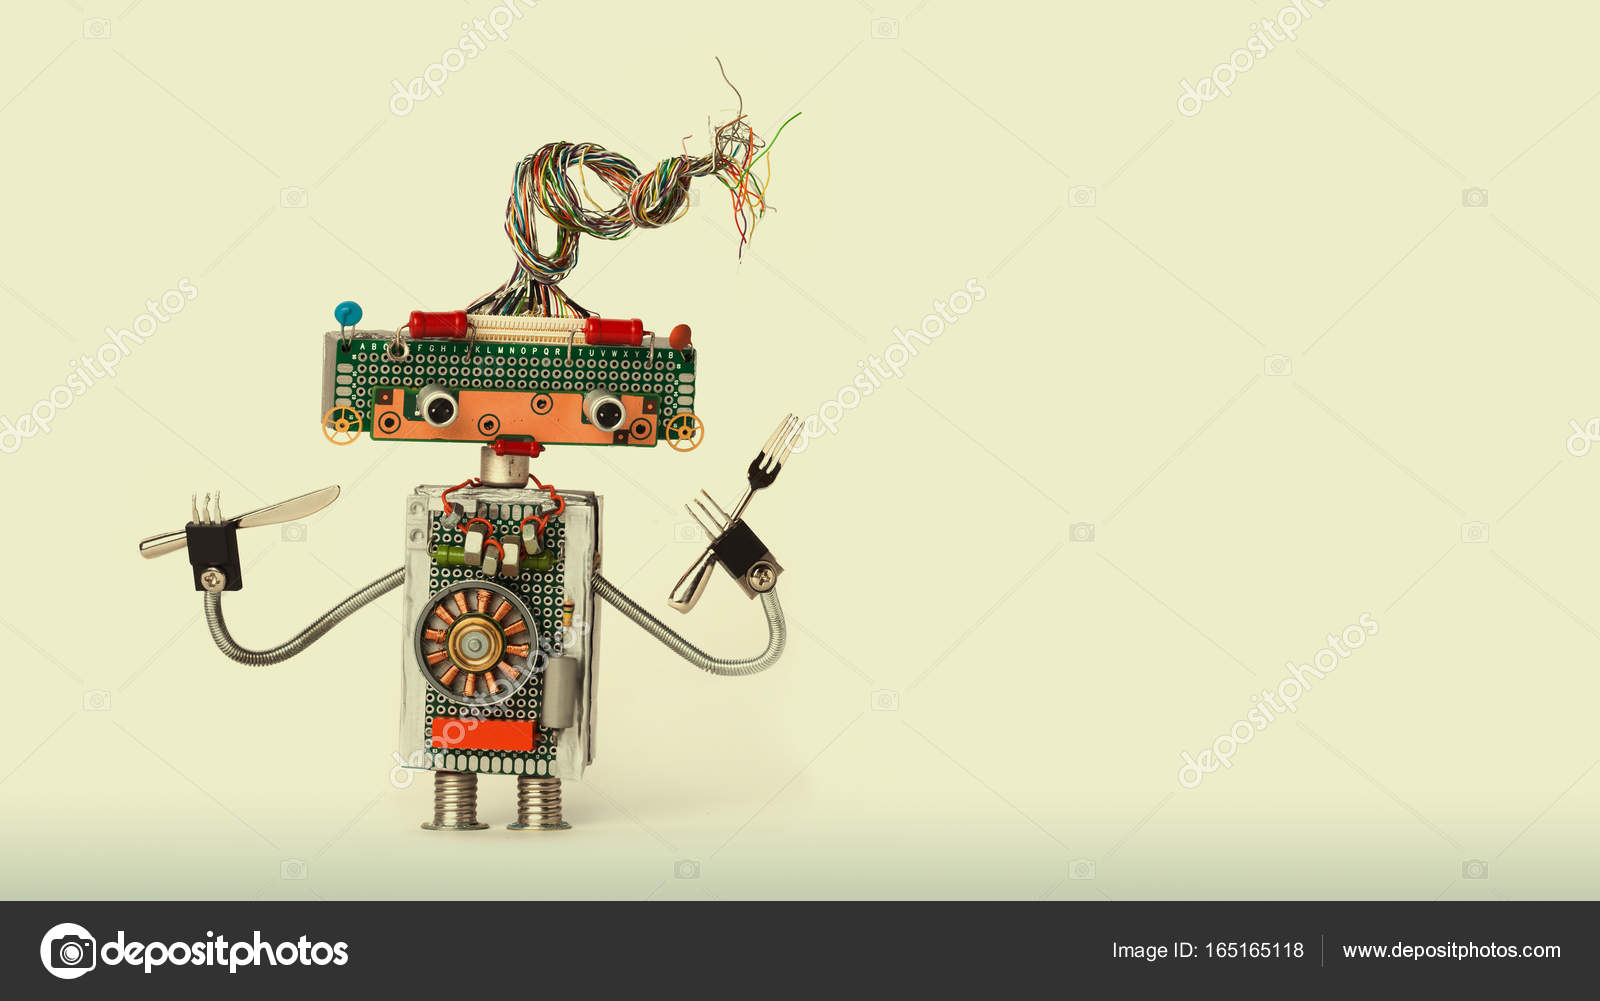 Culinary Conceptual Robotic Toy Fork Spoon Funny Chef Robot Restaurant Electrical Wiring Diagrams Character For Food Menu Advertising Poster Cyborg Electric Wires Transistors Body On Beige Gray Background Copy Space Photo